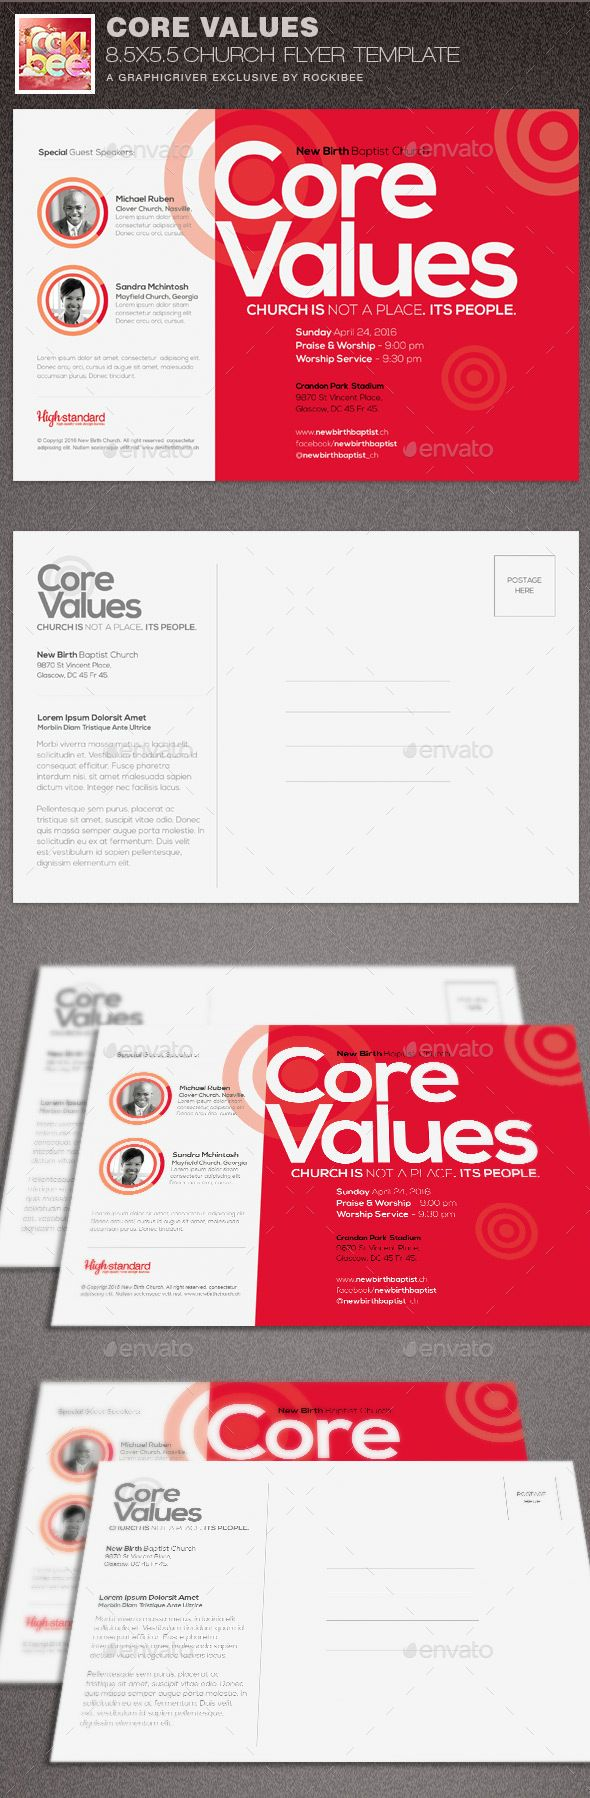 best images about church marketing flyer templates core values church flyer template